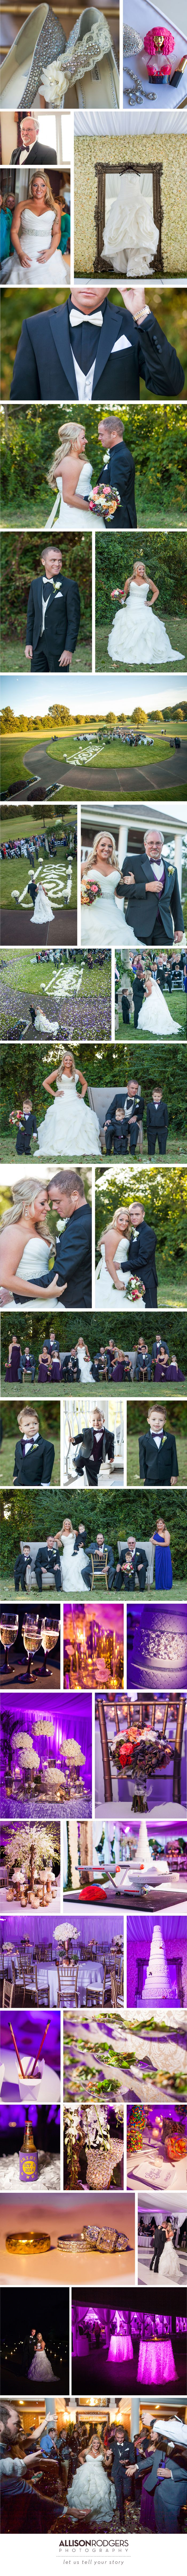 AllisonRodgers_Photography_wedding_BUMPUSweb